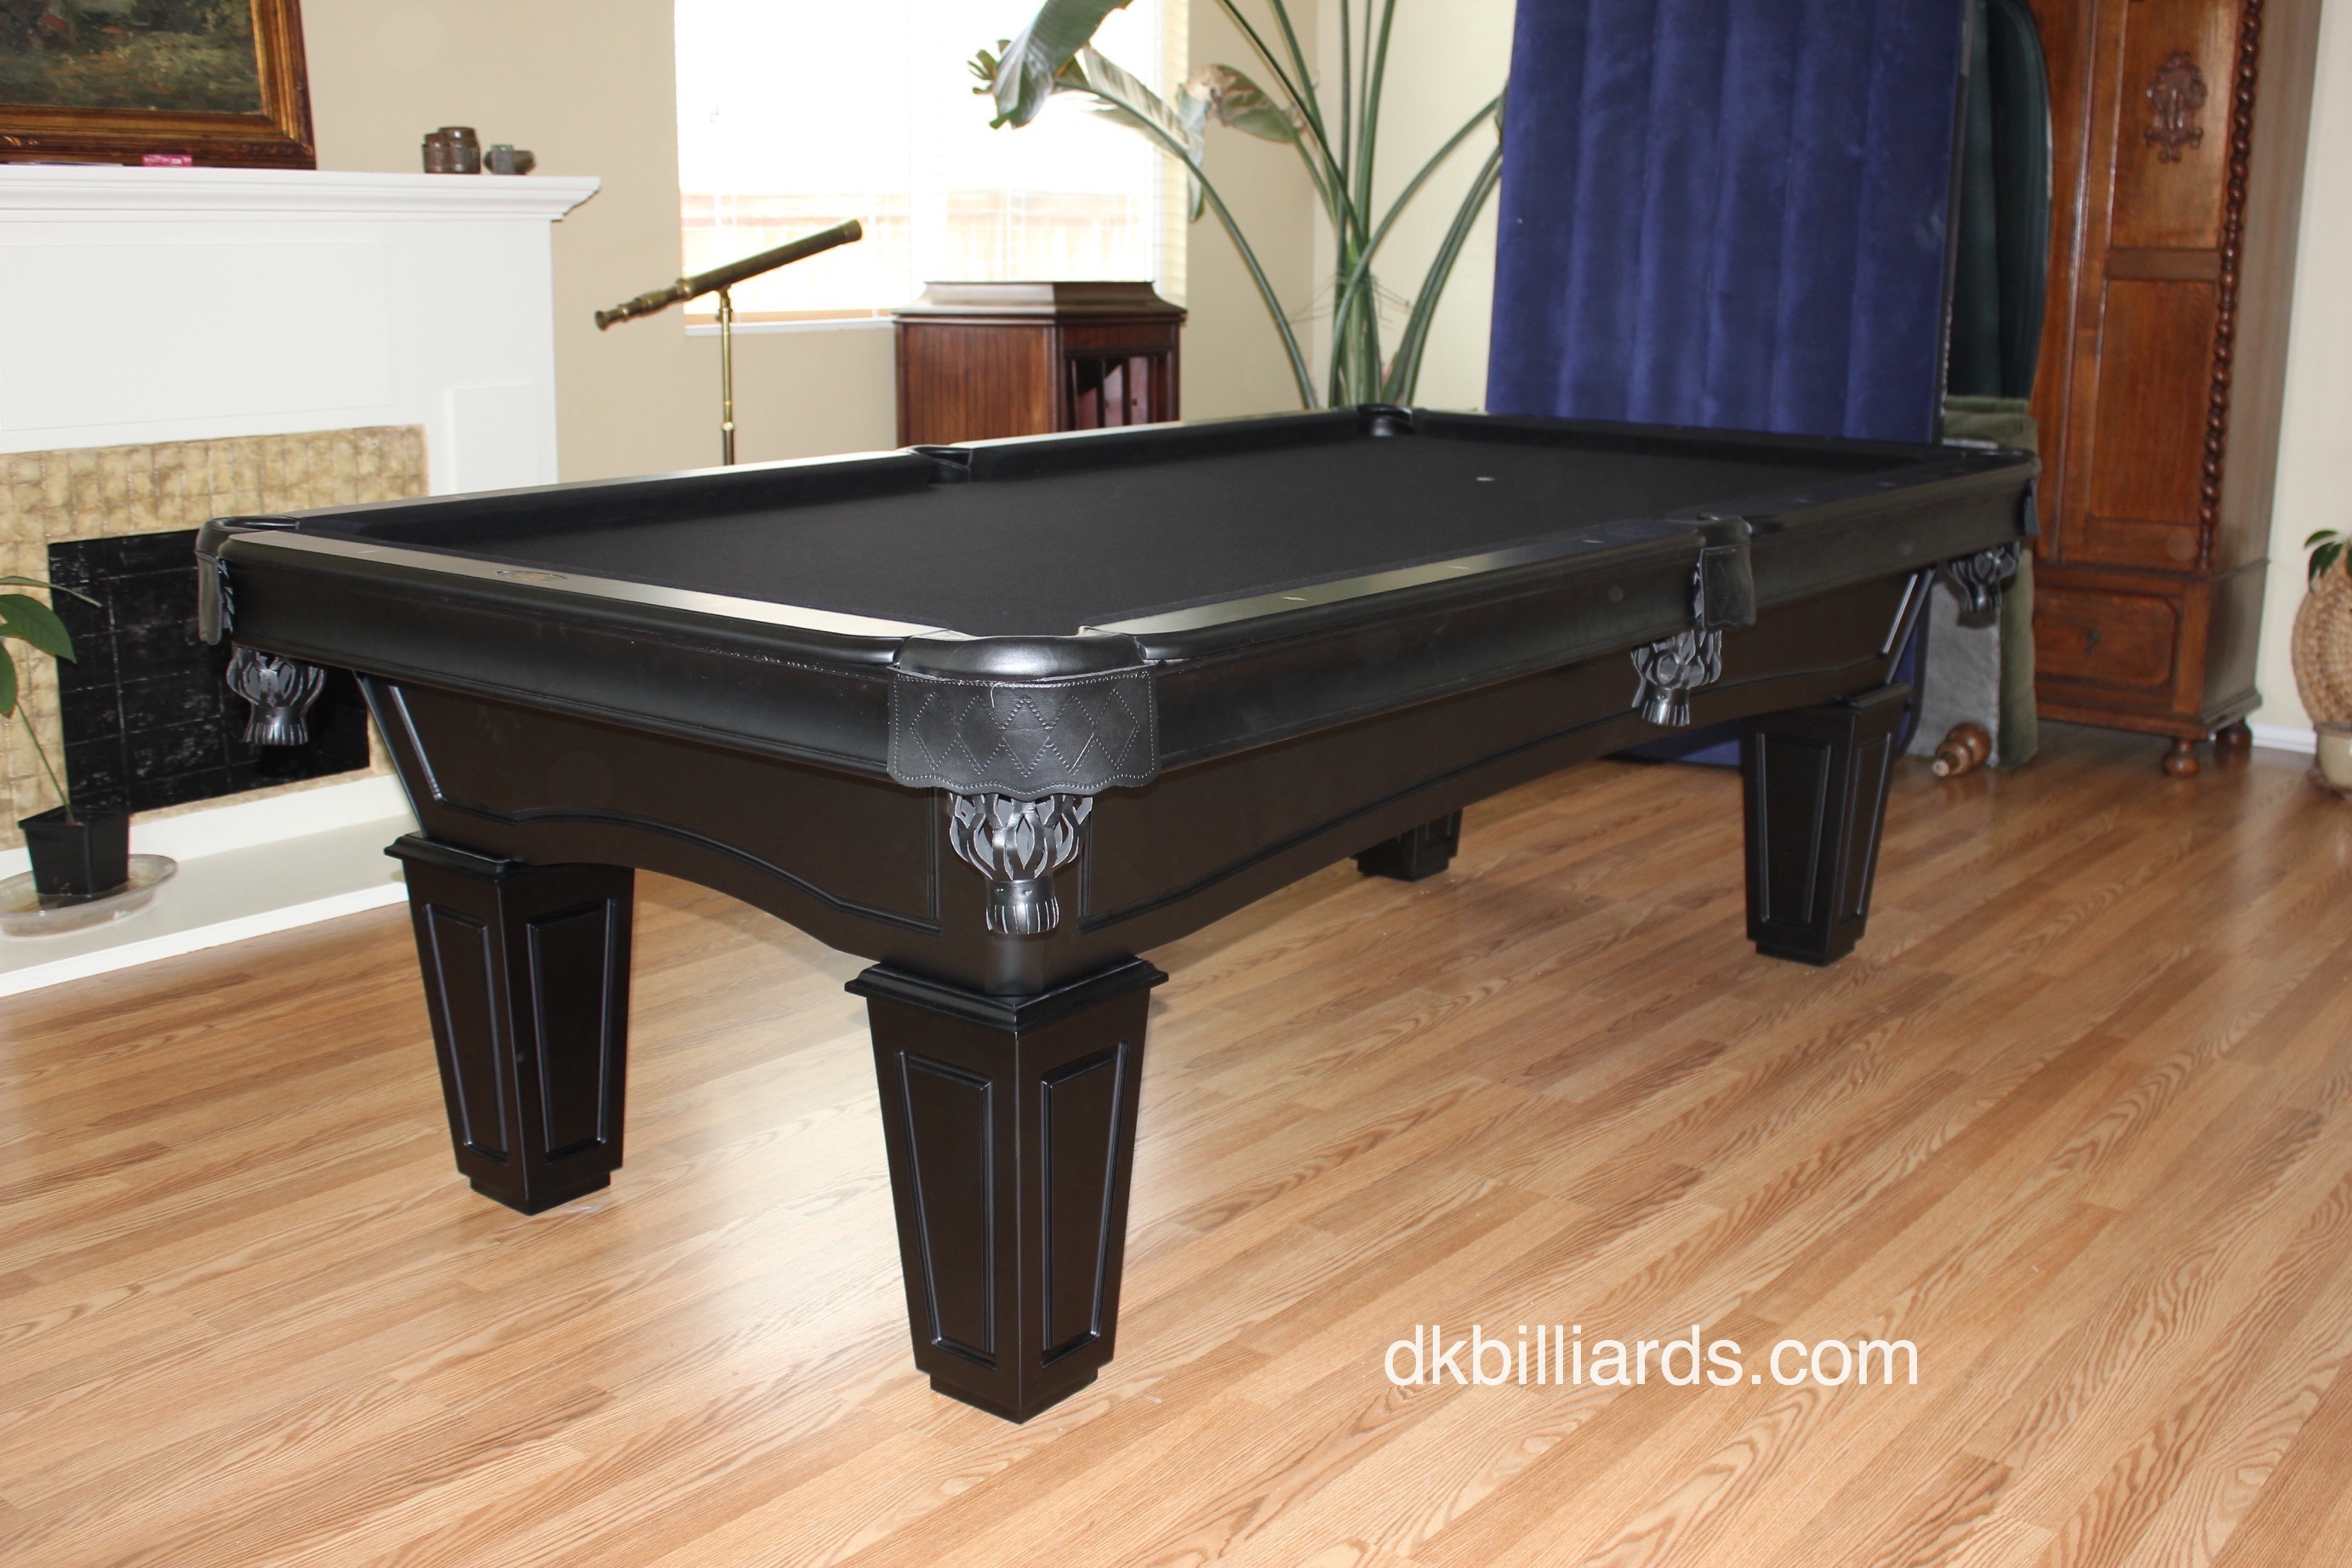 Check Out This 8u2032 All Black Pool Table We Installed In Victorville,  California. The All Black Frame And Pockets Were Paired With Black Felt To  Create This ...